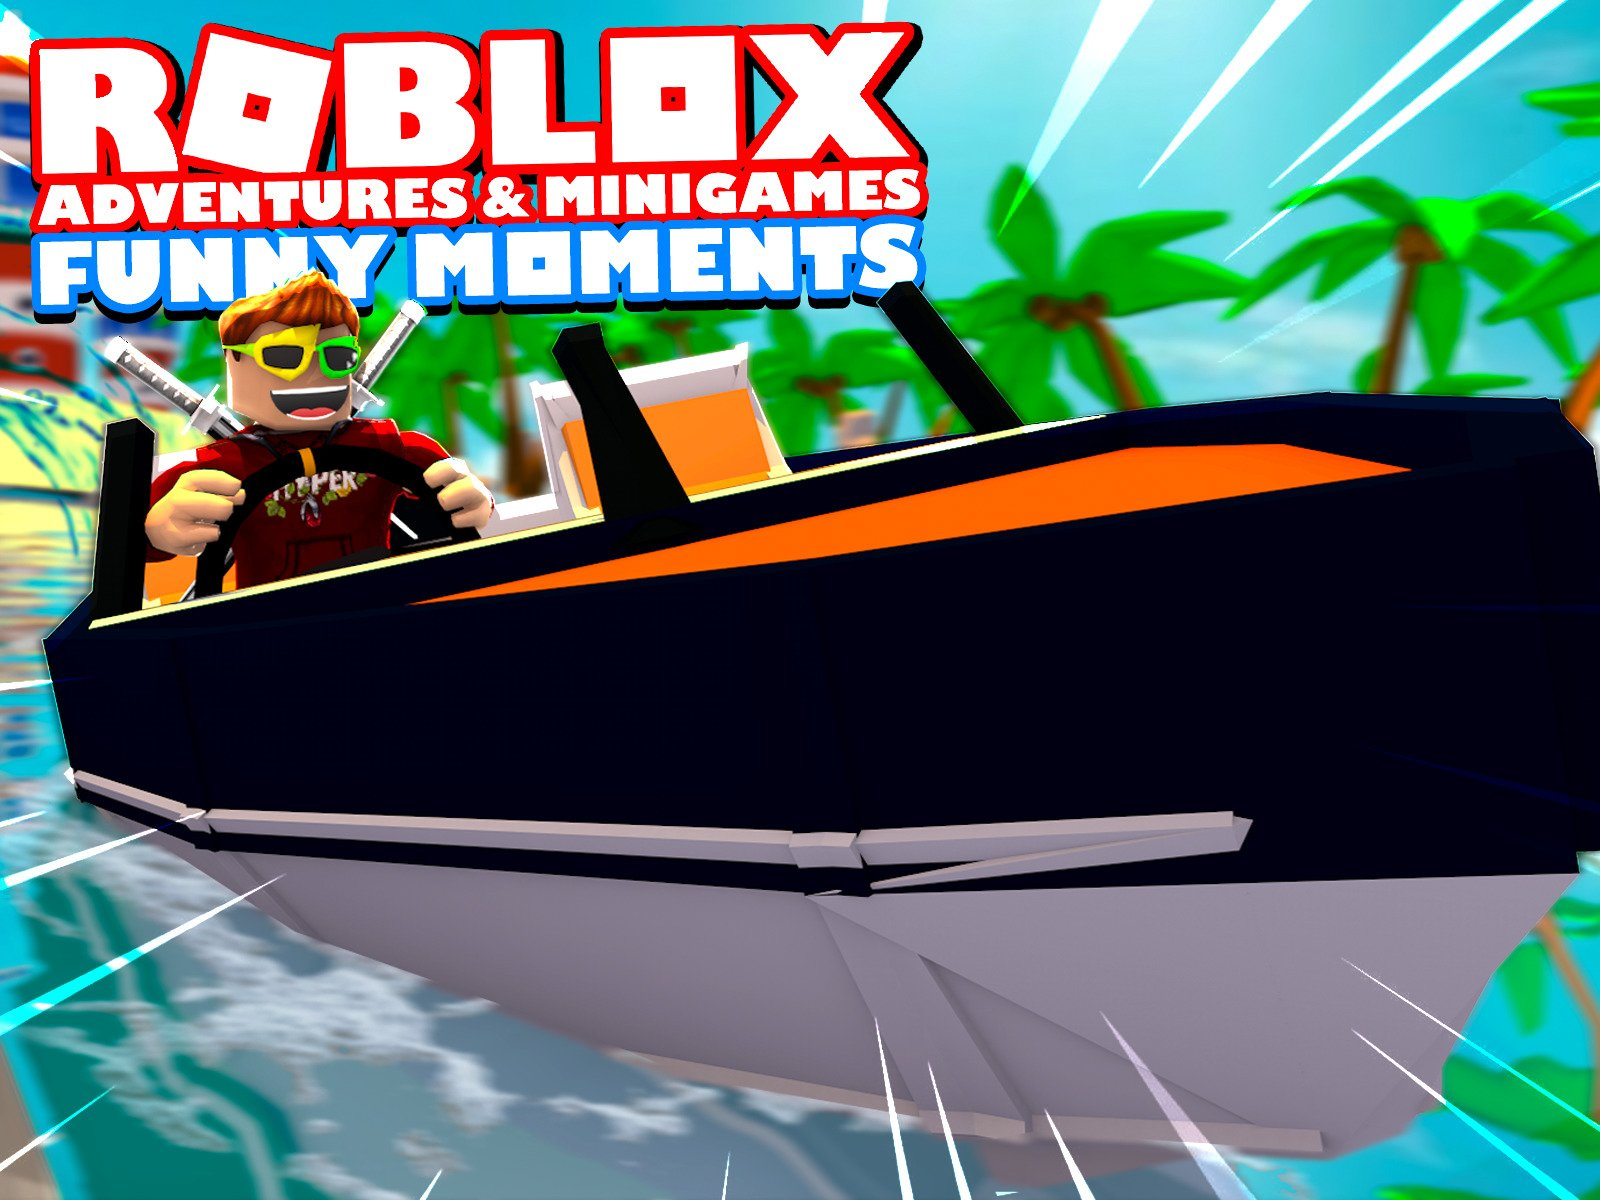 Roblox Adventures & Minigames (Funny Moments)